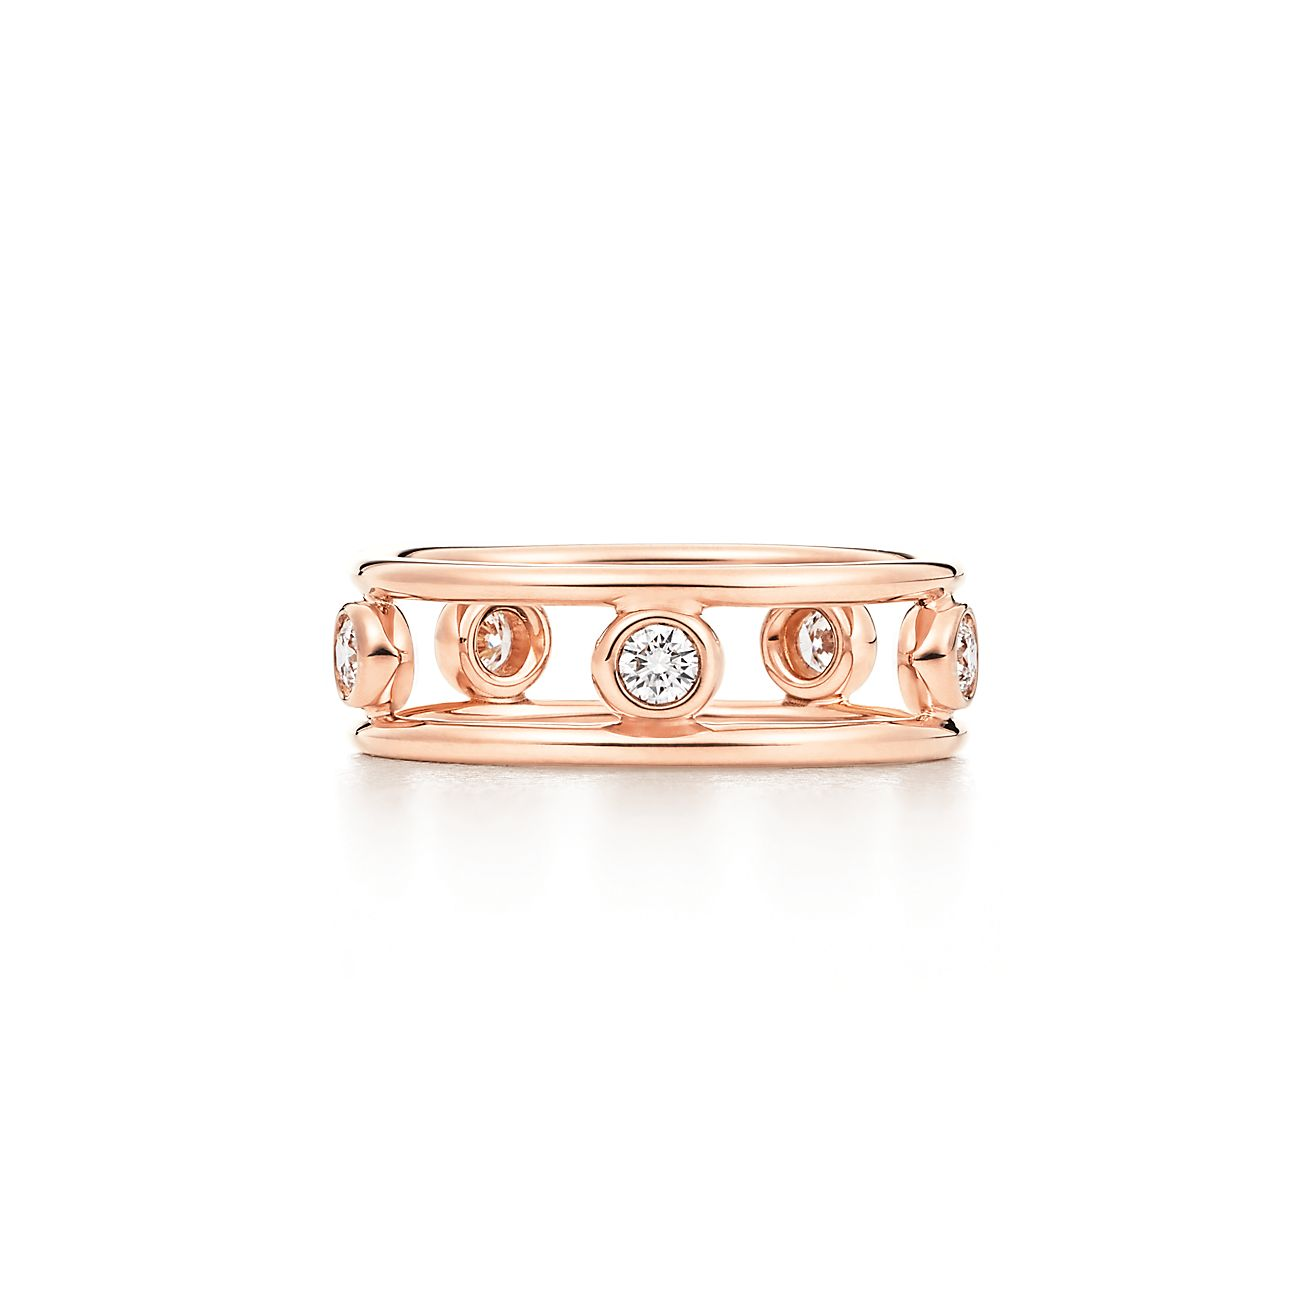 Elsa Peretti Diamonds by the Yard ring in 18k rose gold - Size 4 Tiffany & Co. LNG8ljRtec